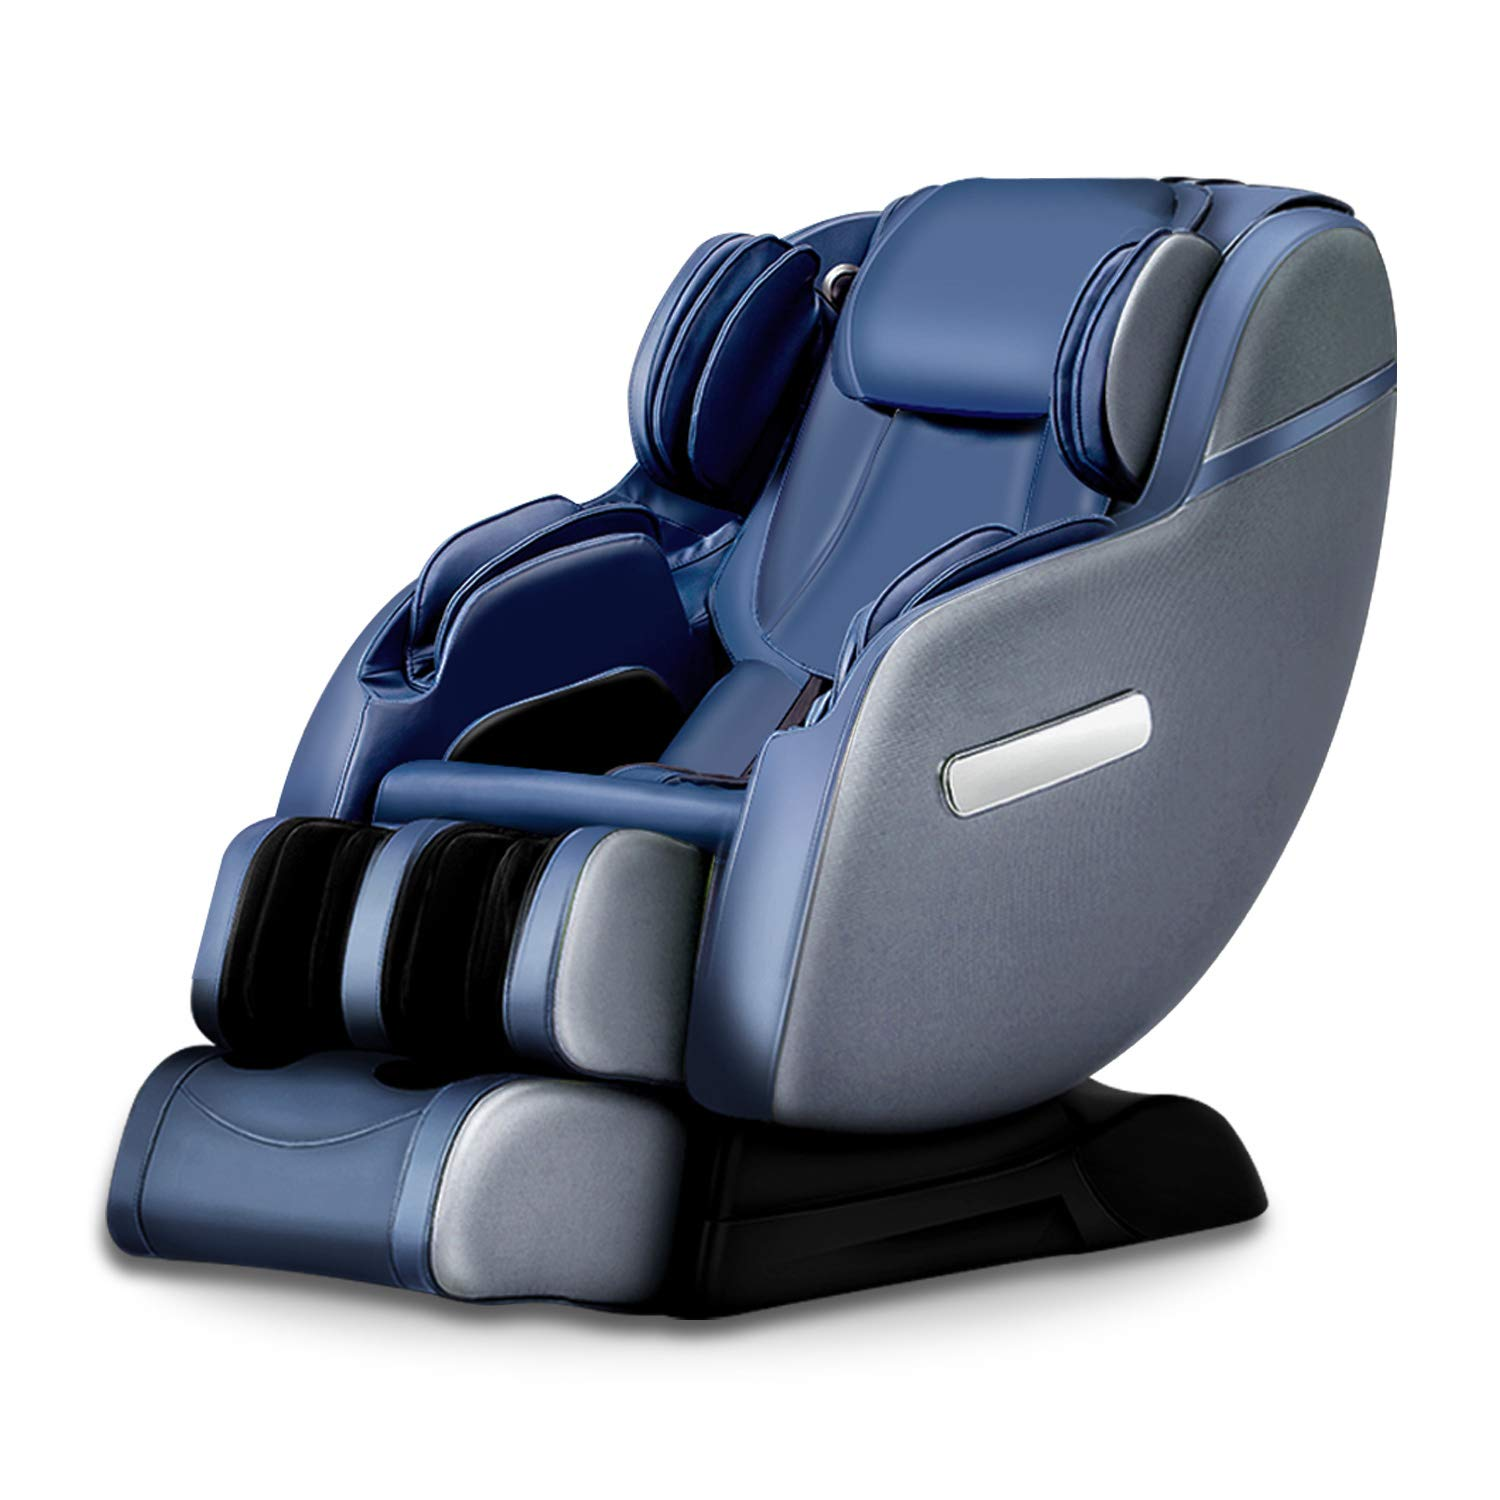 Top 10 Best Massage Chair Reviews in 2021 3